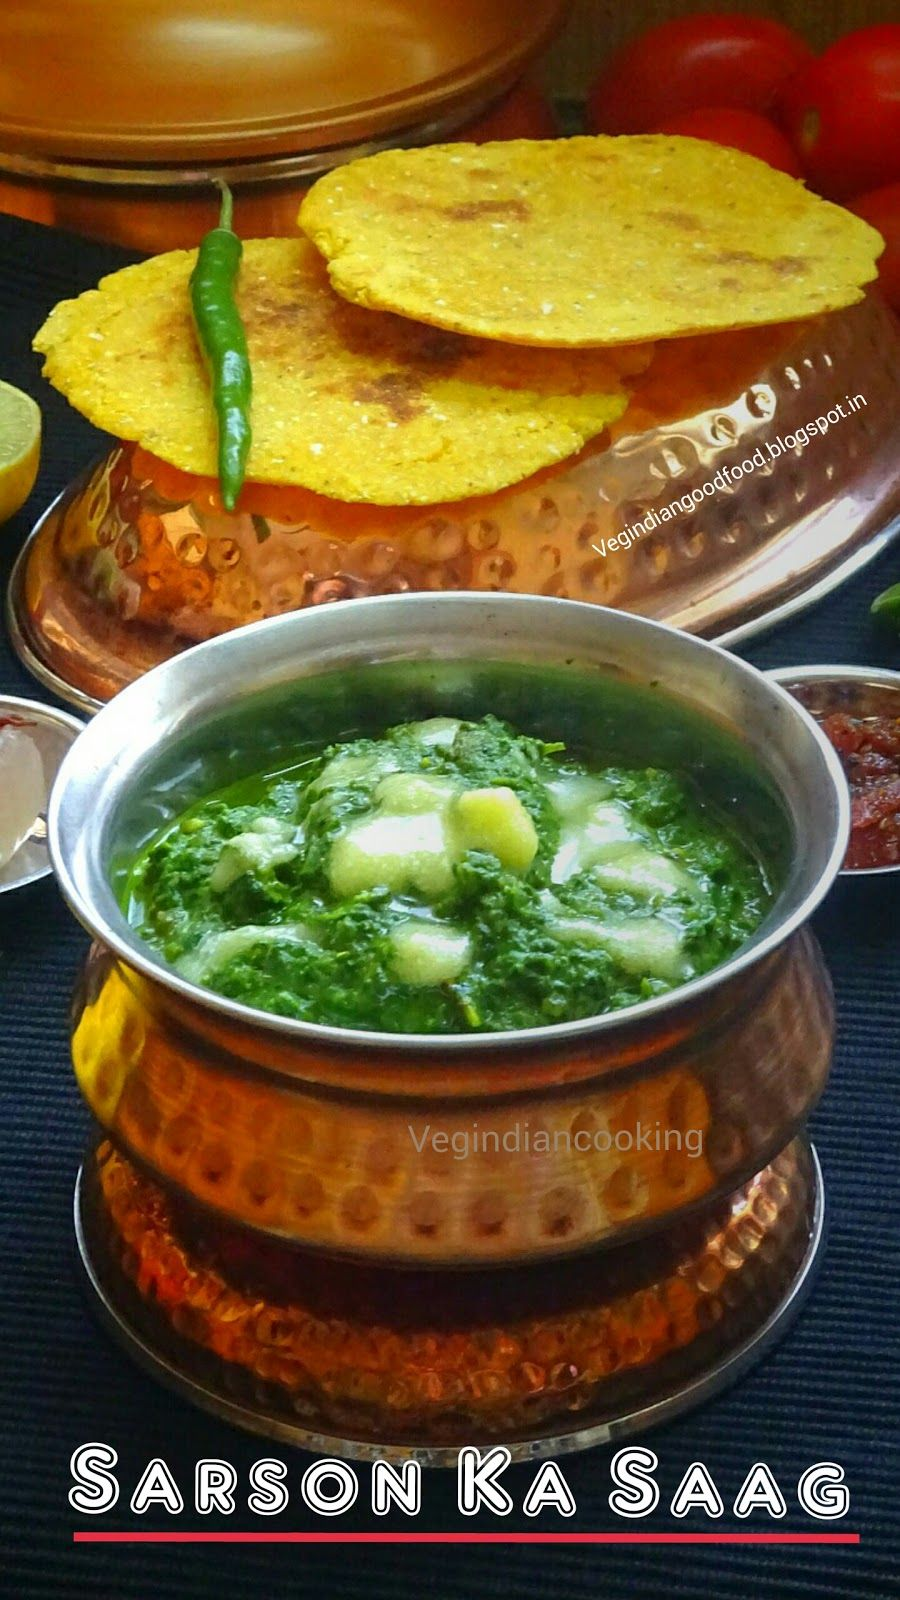 How to make sarson ka saag punjabi sarson da saag recipe winter how to make sarson ka saag punjabi sarson da saag recipe winter special mustard punjabi recipesindian food forumfinder Images